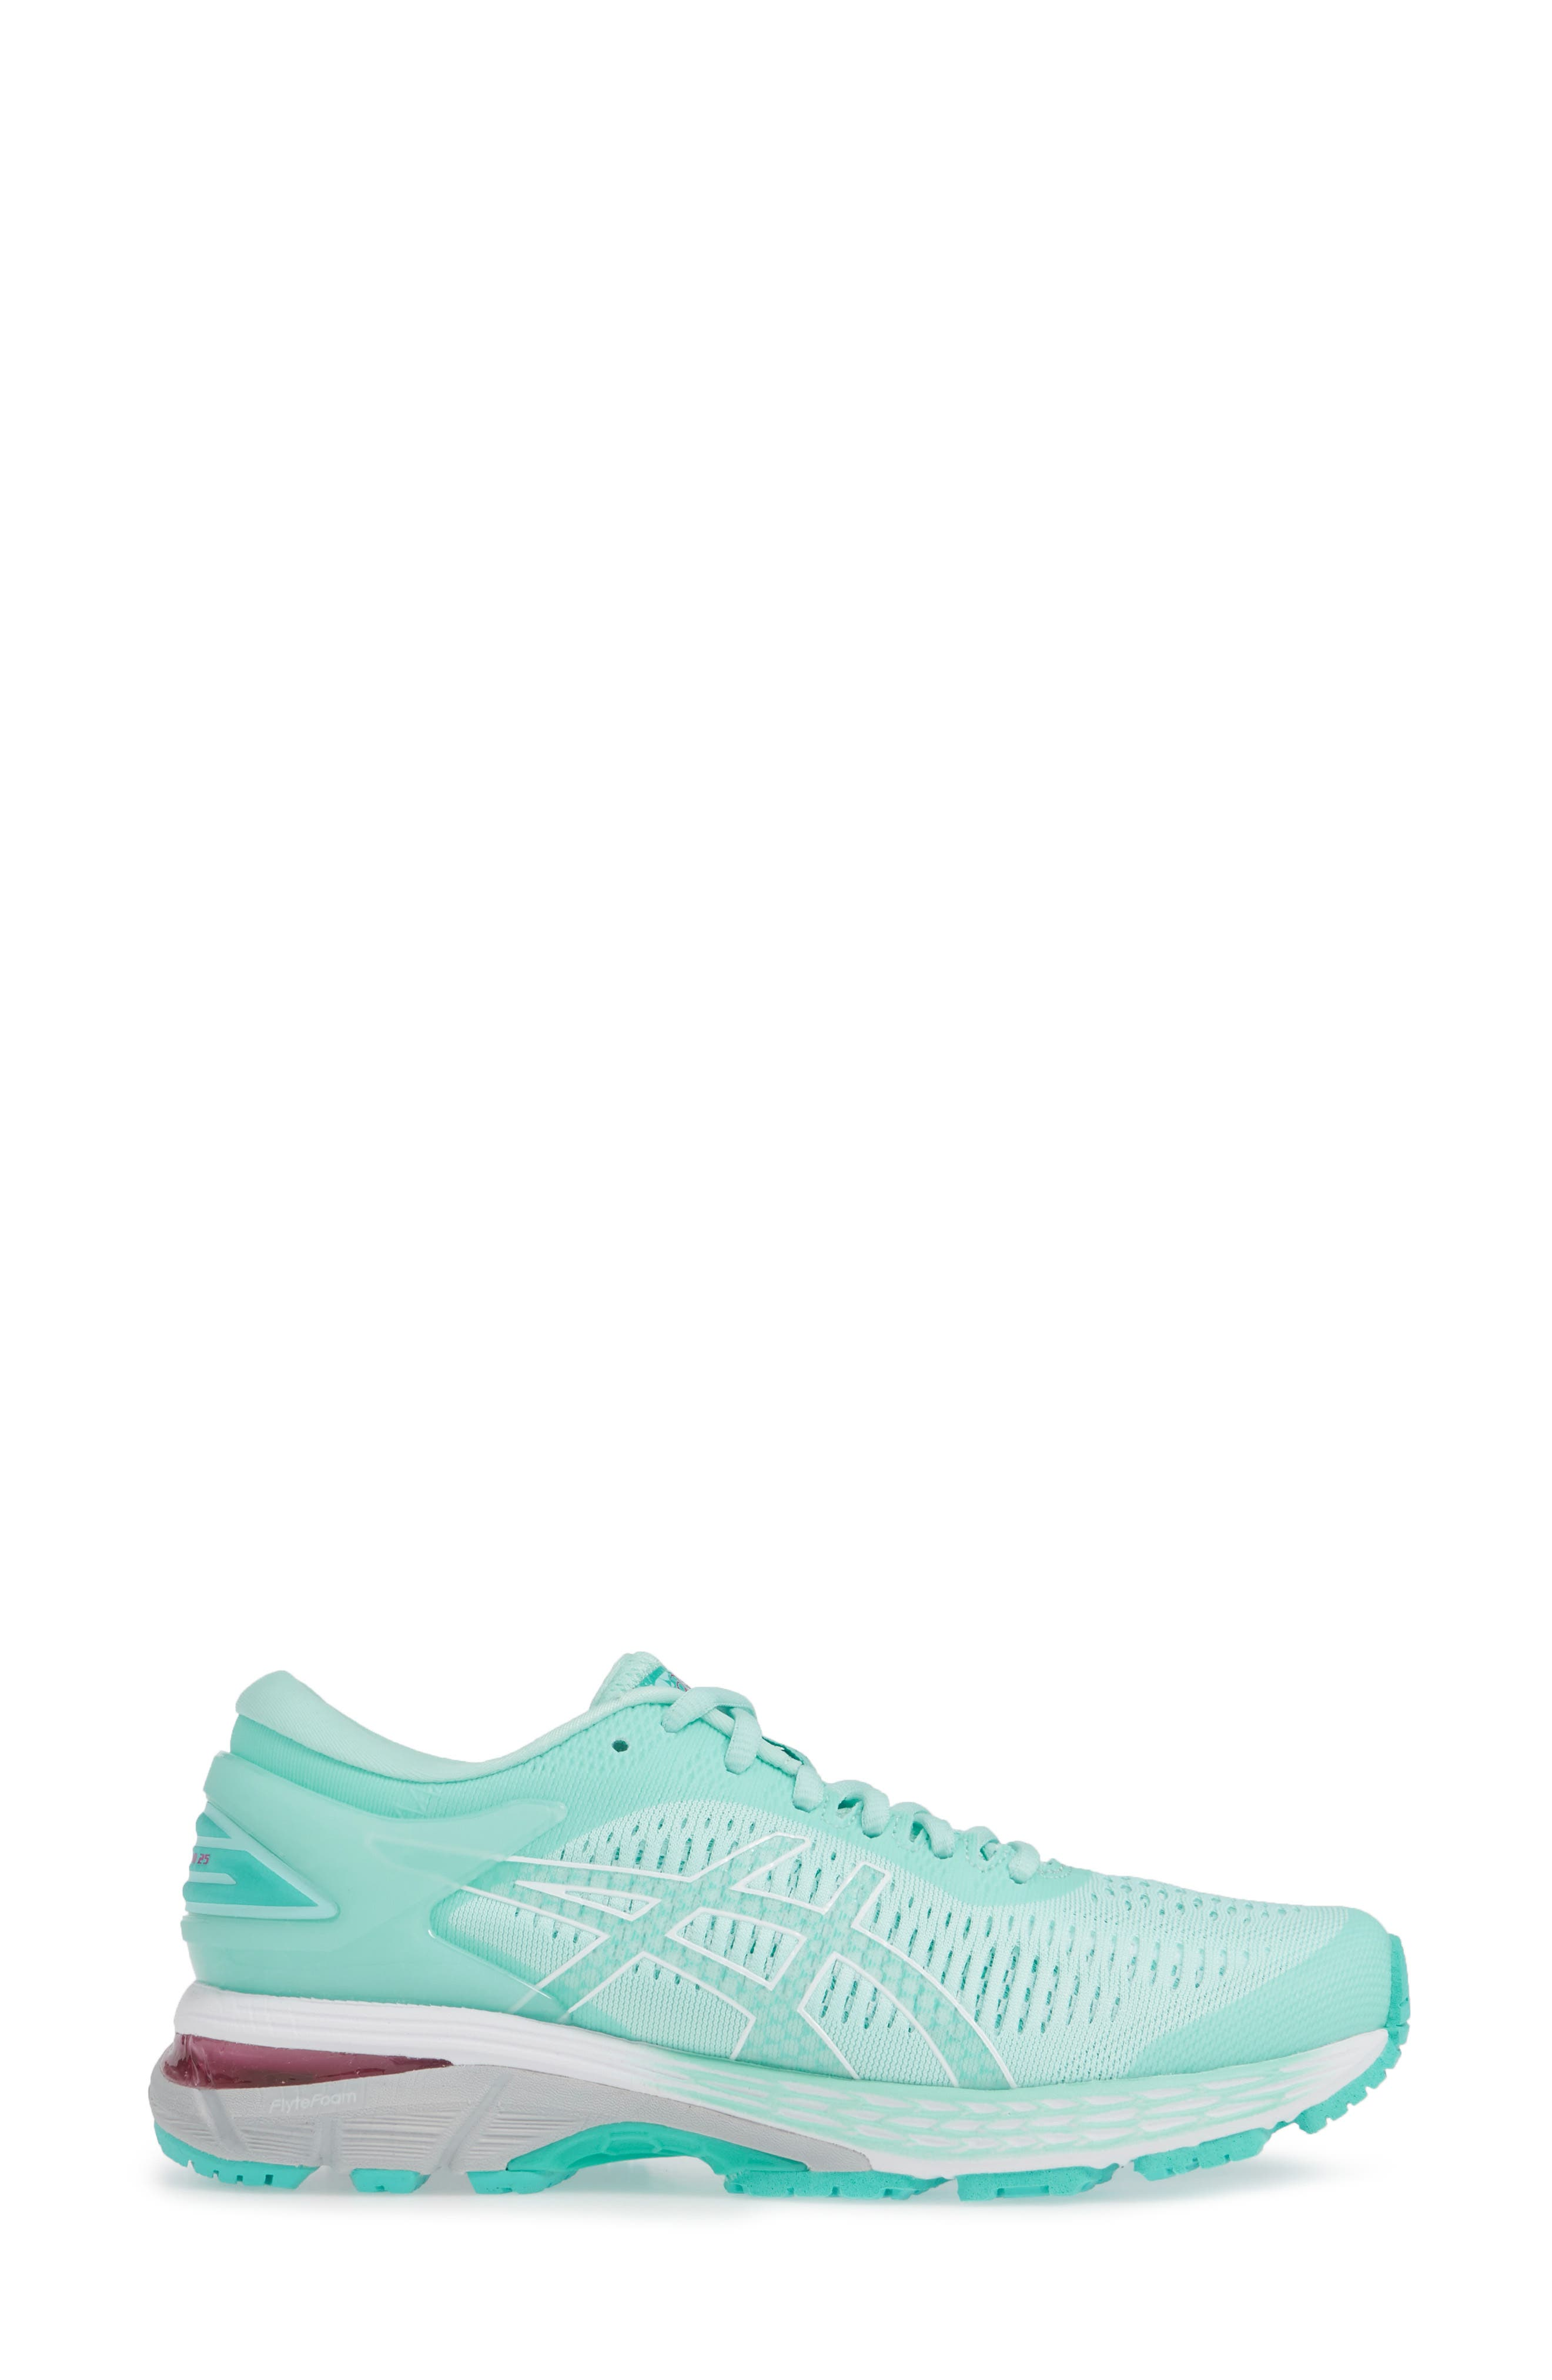 ASICS<SUP>®</SUP>, GEL-Kayano<sup>®</sup> 25 Running Shoe, Alternate thumbnail 3, color, ICY MORNING/ SEA GLASS